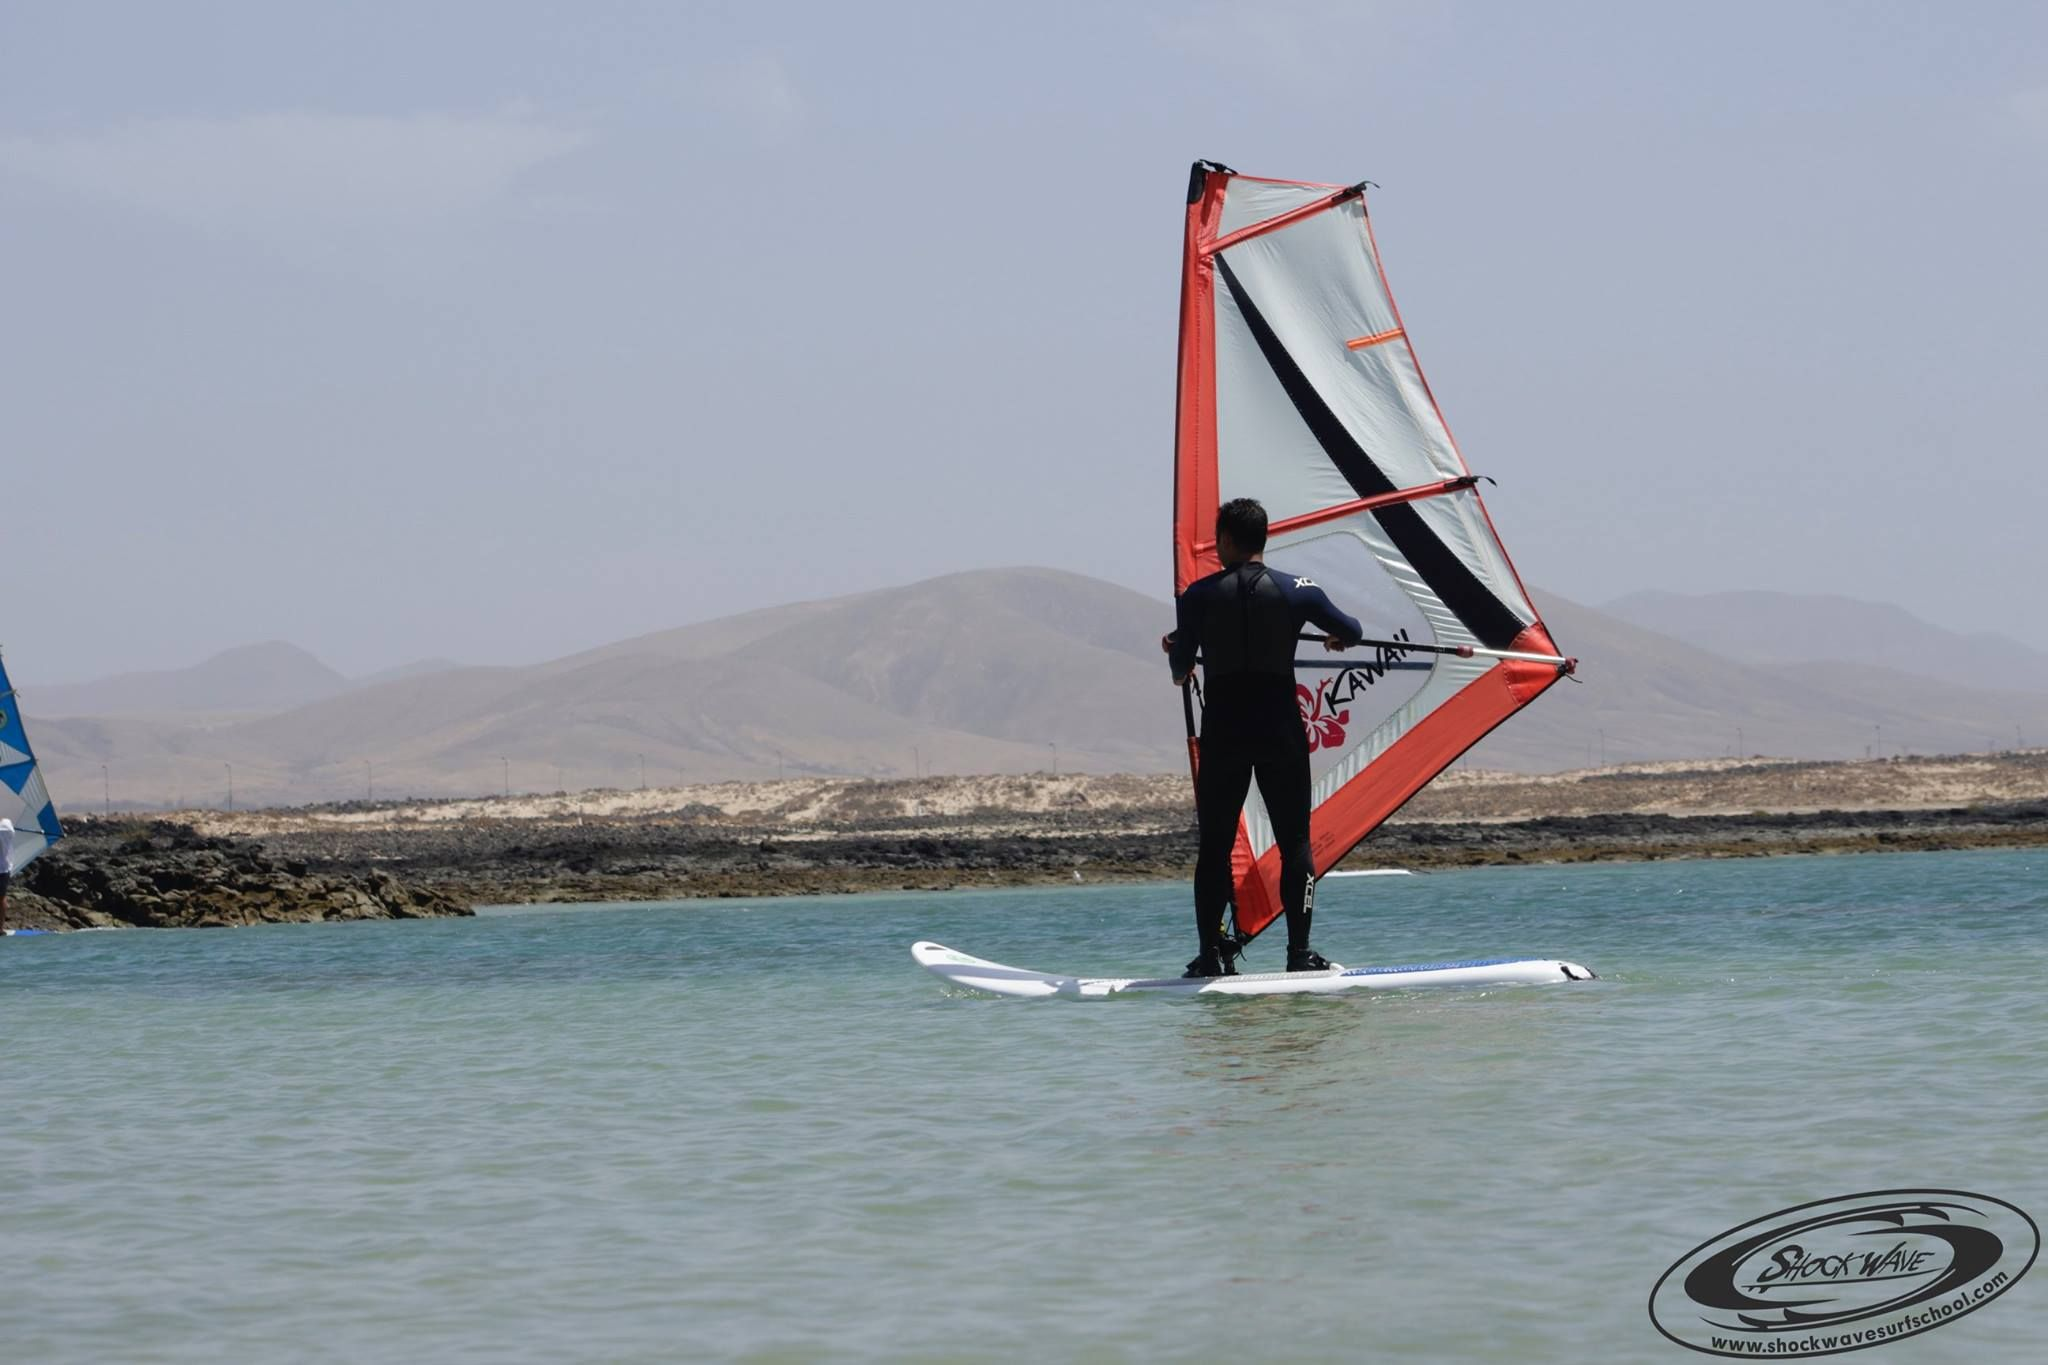 Qualified monitors for windsurfing courses in El Cotillo